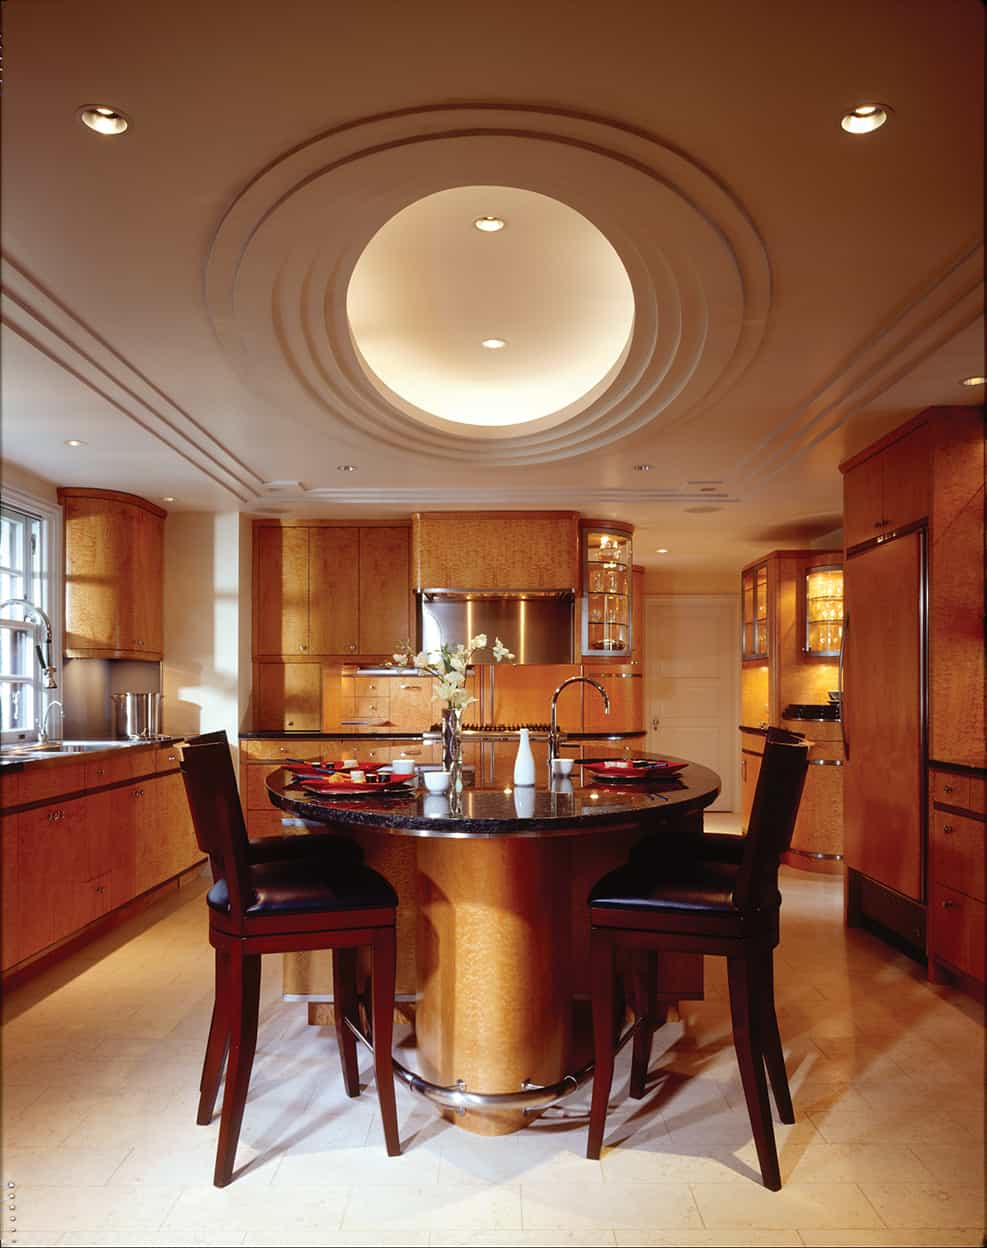 The kitchen's other dominating feature is the ceiling, trayed in rectangles near the perimeter, with ovals near the center, surrounding a glowing central oval, lit by can lights. The cabinetry is light toned woods with a number of glass display cabinets.